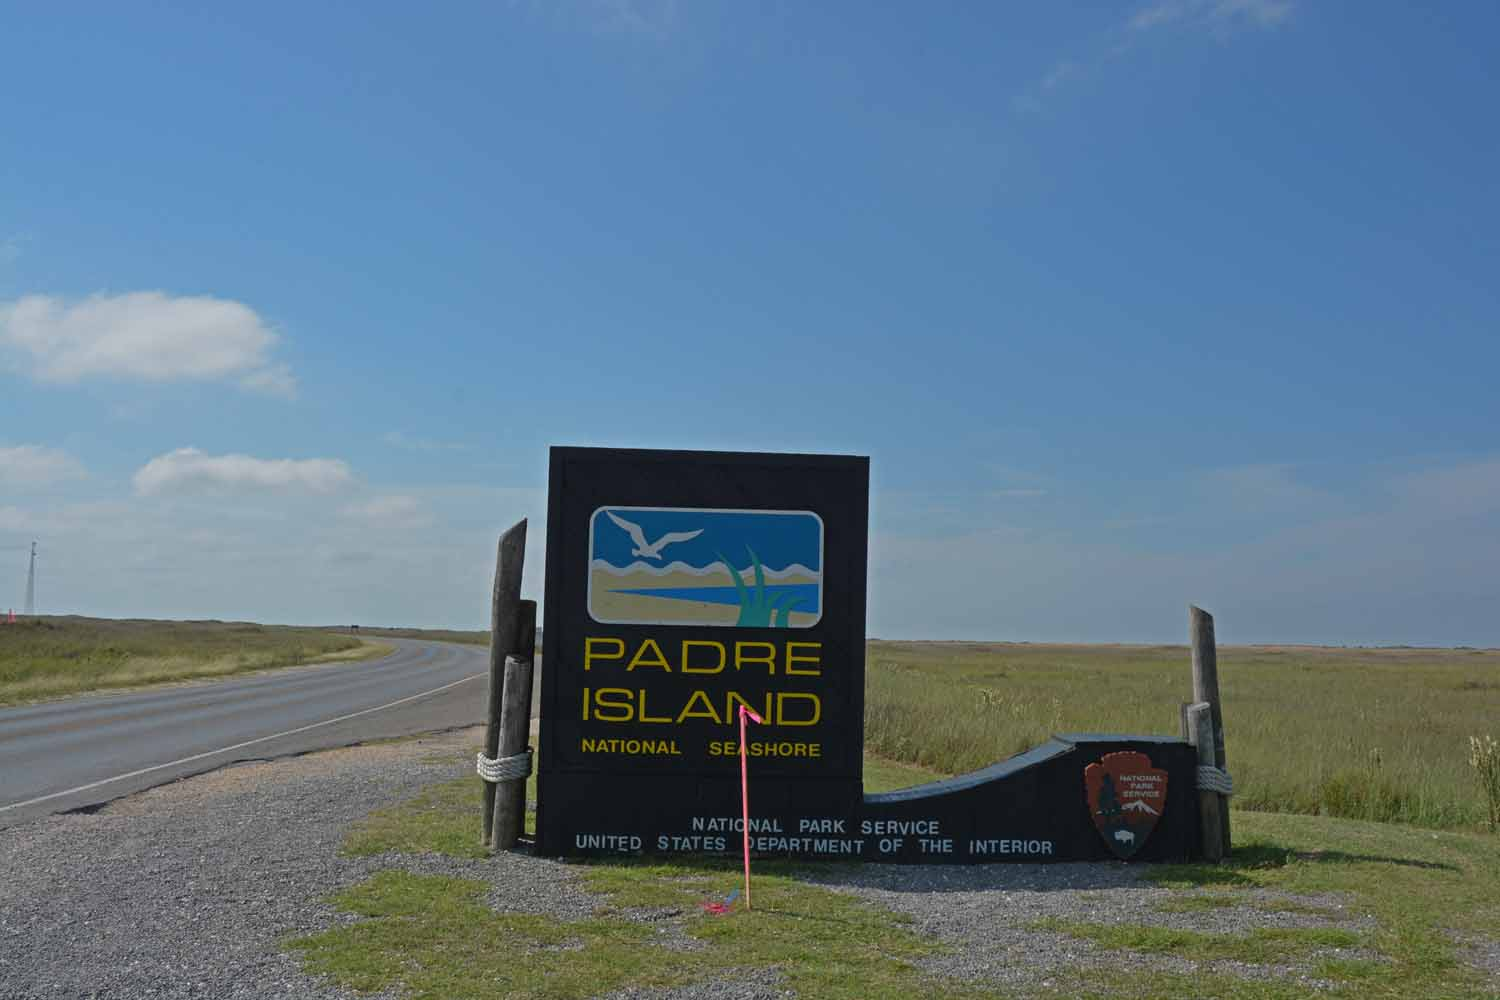 Continuing the Texas adventure, we make our way to Corpus Christi and the Padre Island National Seashore